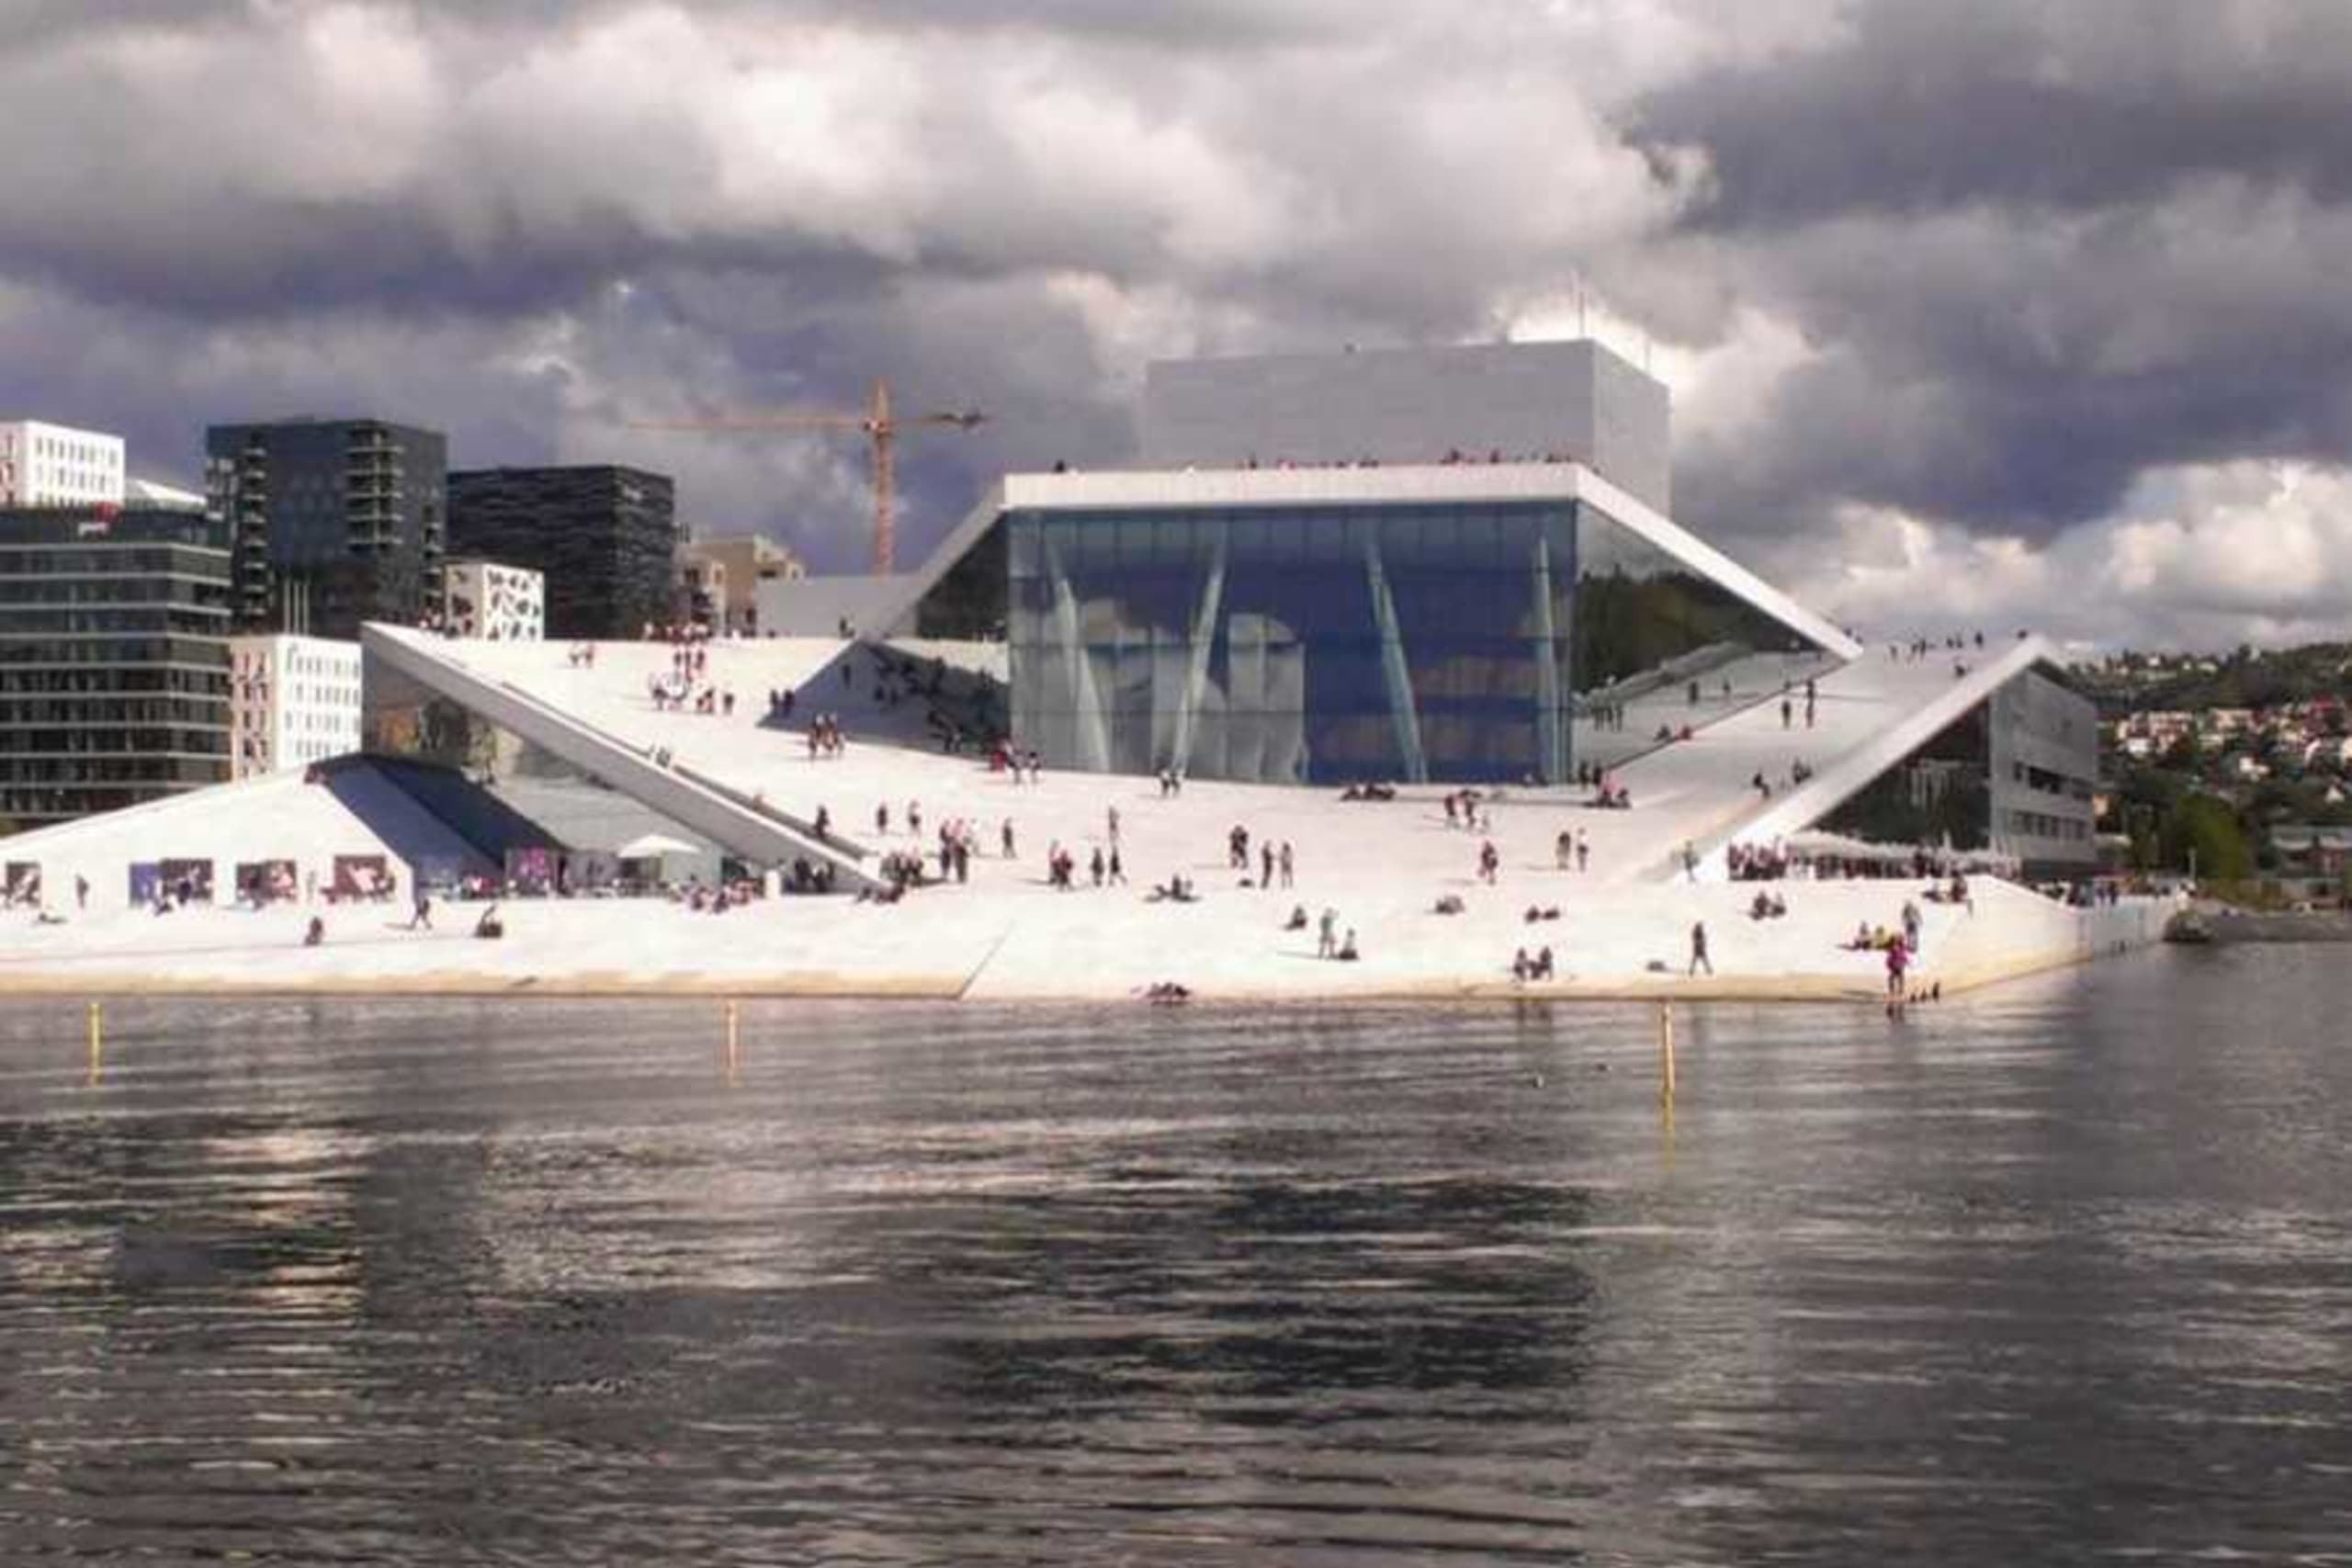 A view of the Oslo Opera House seen from the water.